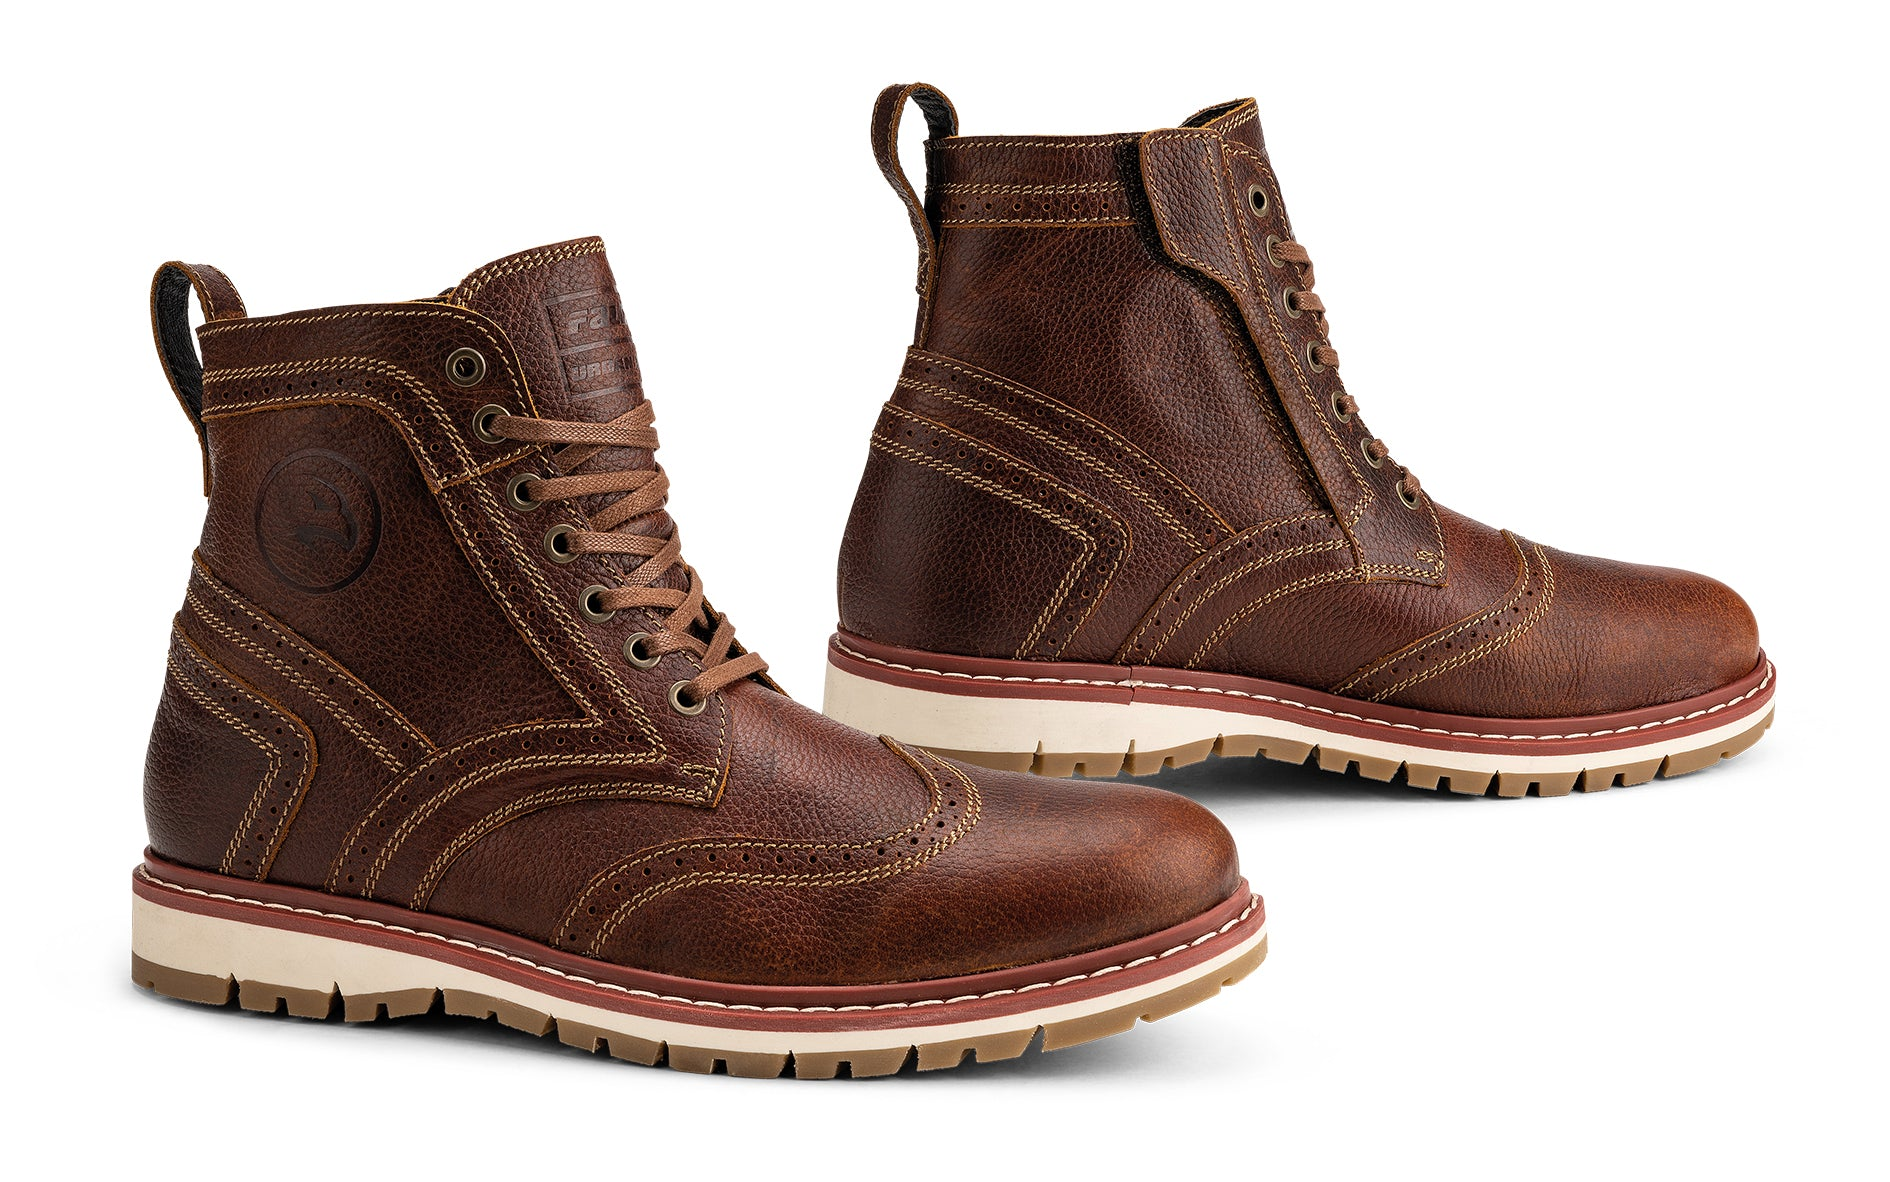 Falco Brogue Boots, Boots, Falco - Averys Motorcycles